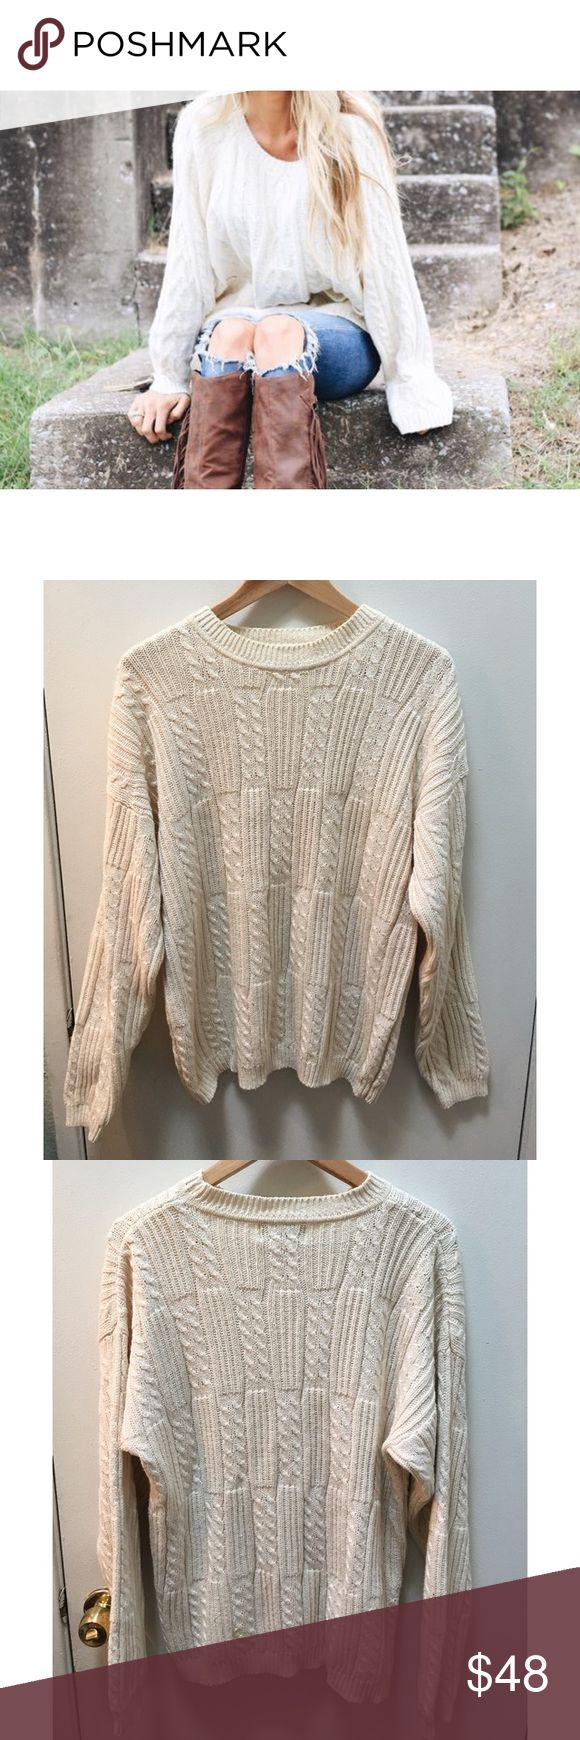 Knox• vintage 80's jumper🍂 A soft feel & slouchy fit define the need-now appeal of this comfy cable knit sweater! This beauty features a cool cable knit design and texture. Perfect to wear on any chilly day with your fav jeans & boots! Purchased in a Brooklyn vintage shop! In great condition, no rips or stains.❣️will fit oversized for XS- M/L❣️ 🍂Bundle & Save on shipping🍂     🍁I ship same day if purchased before 4pm PST M-F (I do not trade) Vintage Sweaters Crew & Scoop Necks